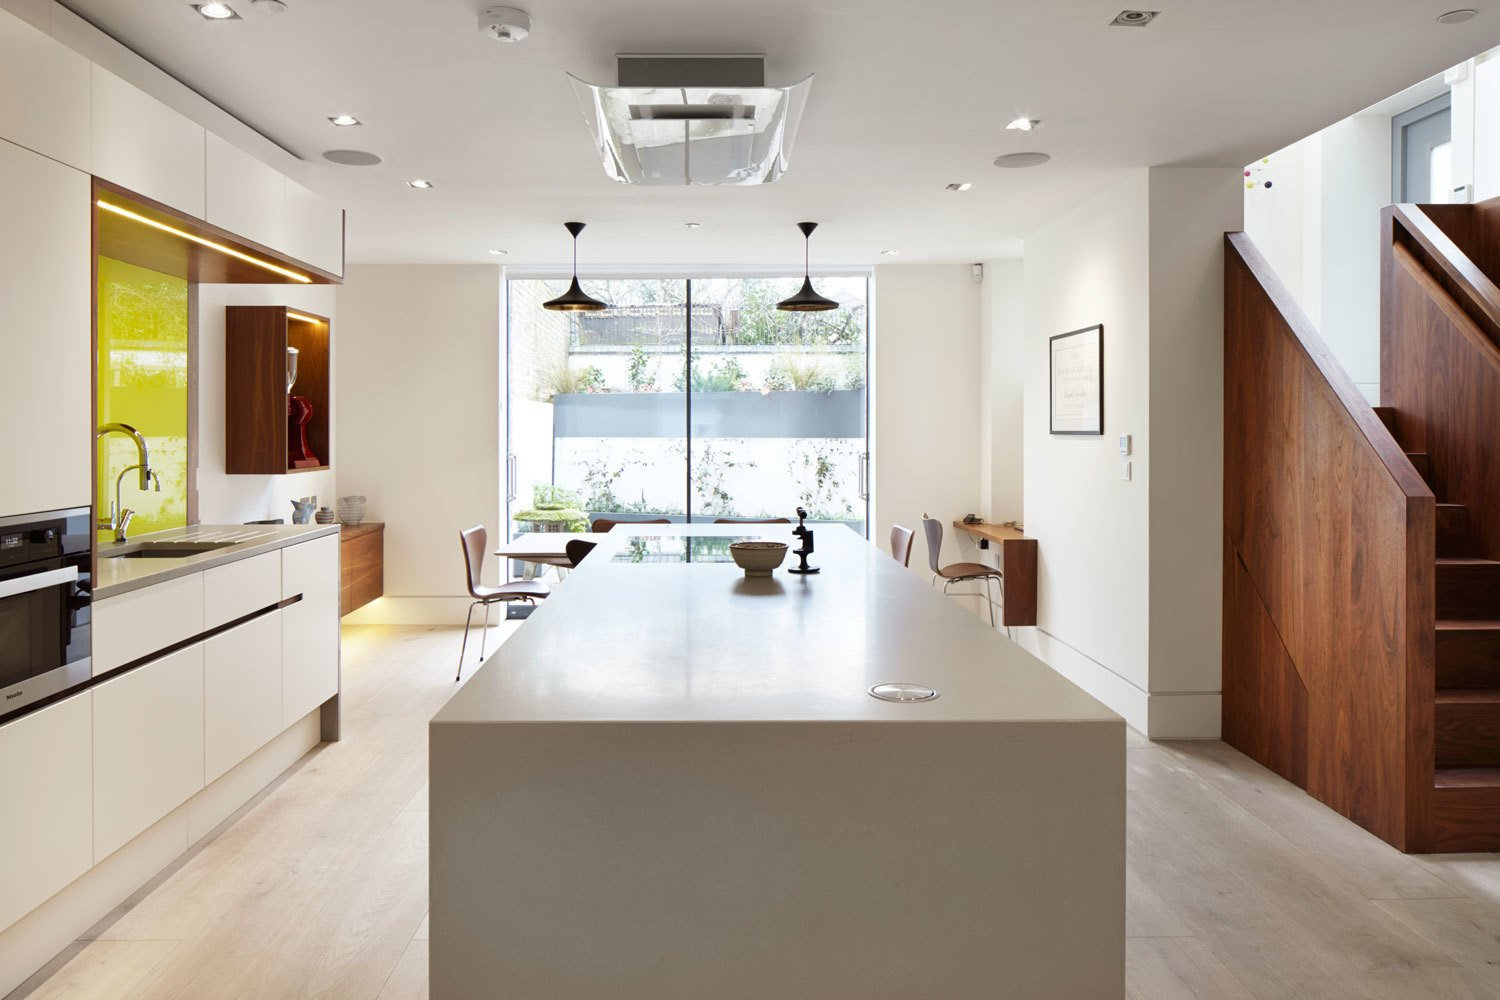 Next Kitchen Lighting Photo 5 of 21 in 6 flooring options to consider for your next kitchen ceiling lighting recessed lighting white cabinet light hardwood floor pendant swipe for next workwithnaturefo